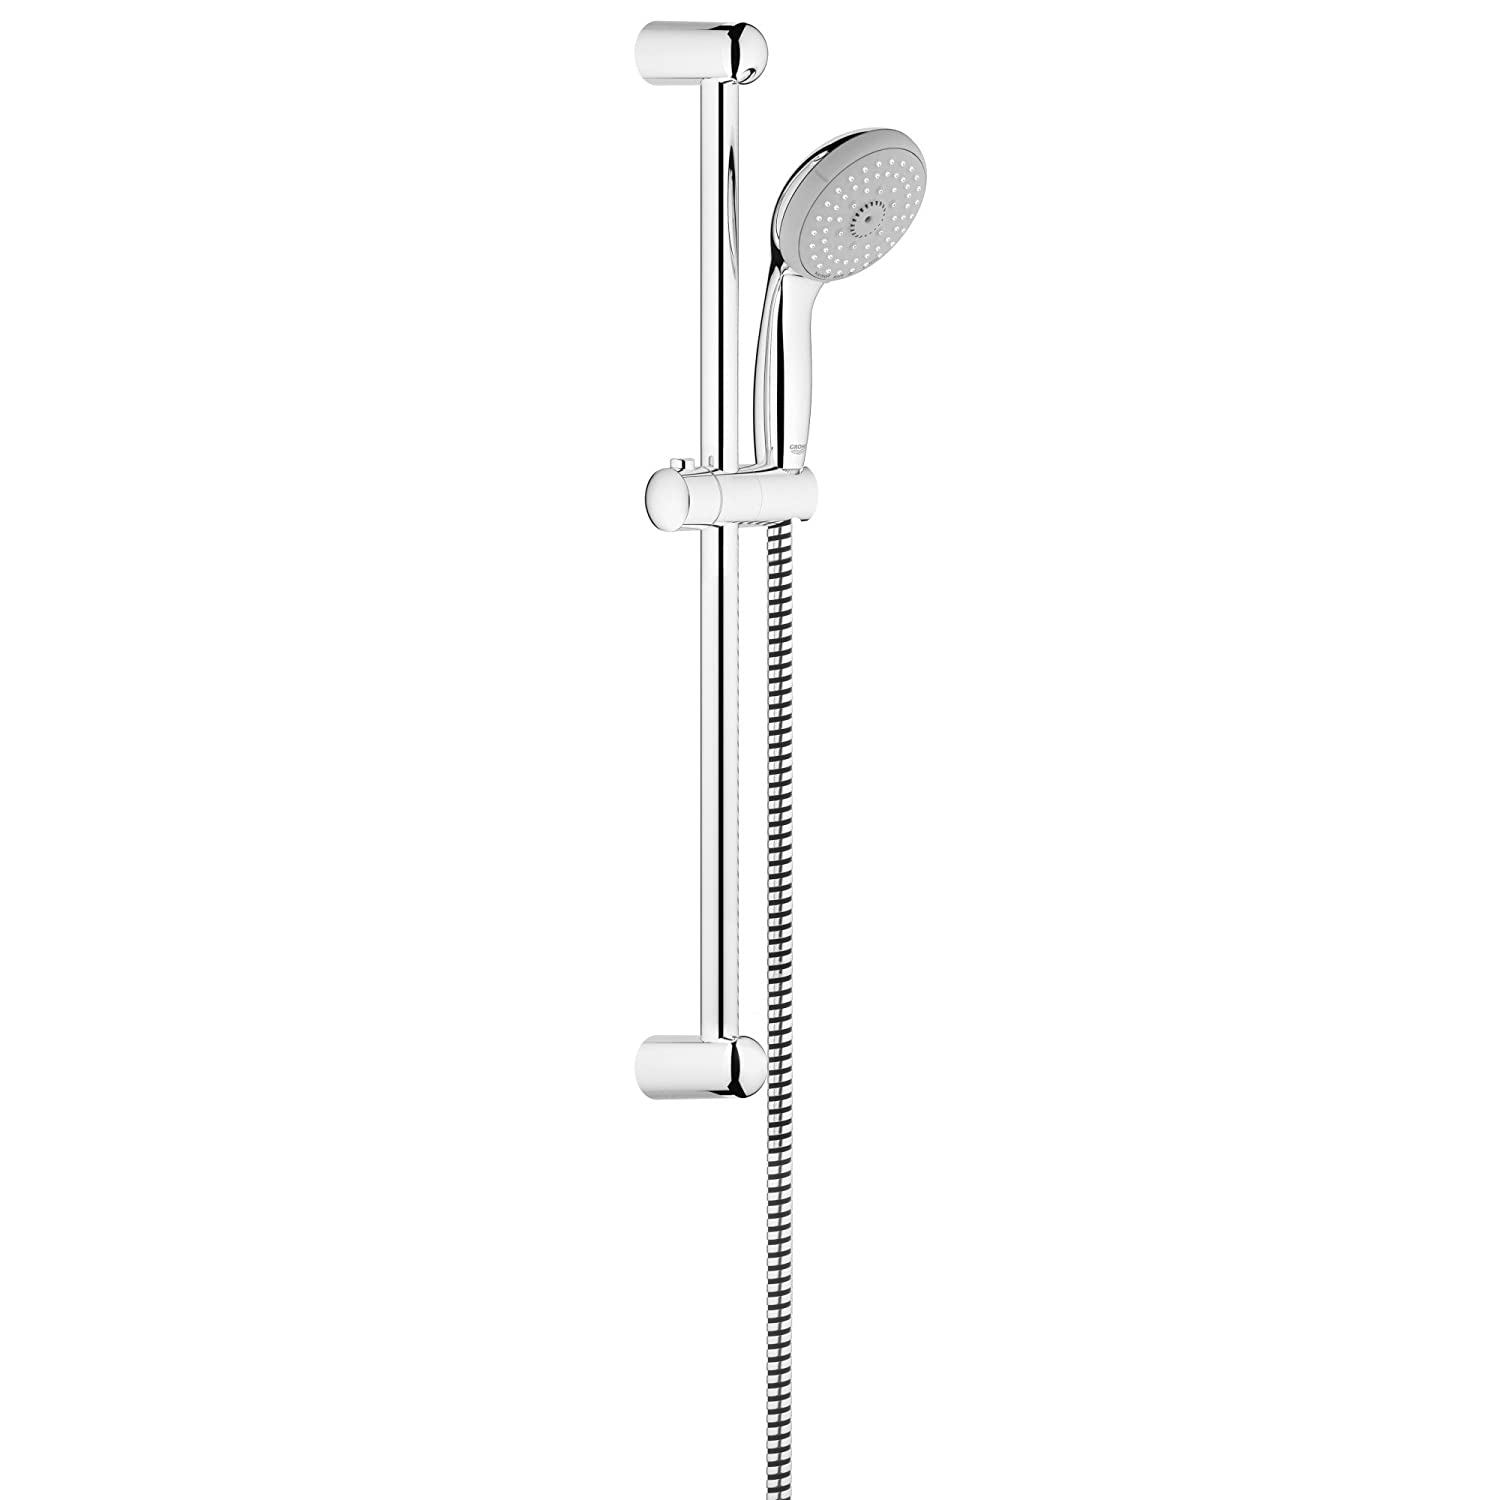 New Tempesta 100 Shower Set - 2 Sprays Grohe 26077000